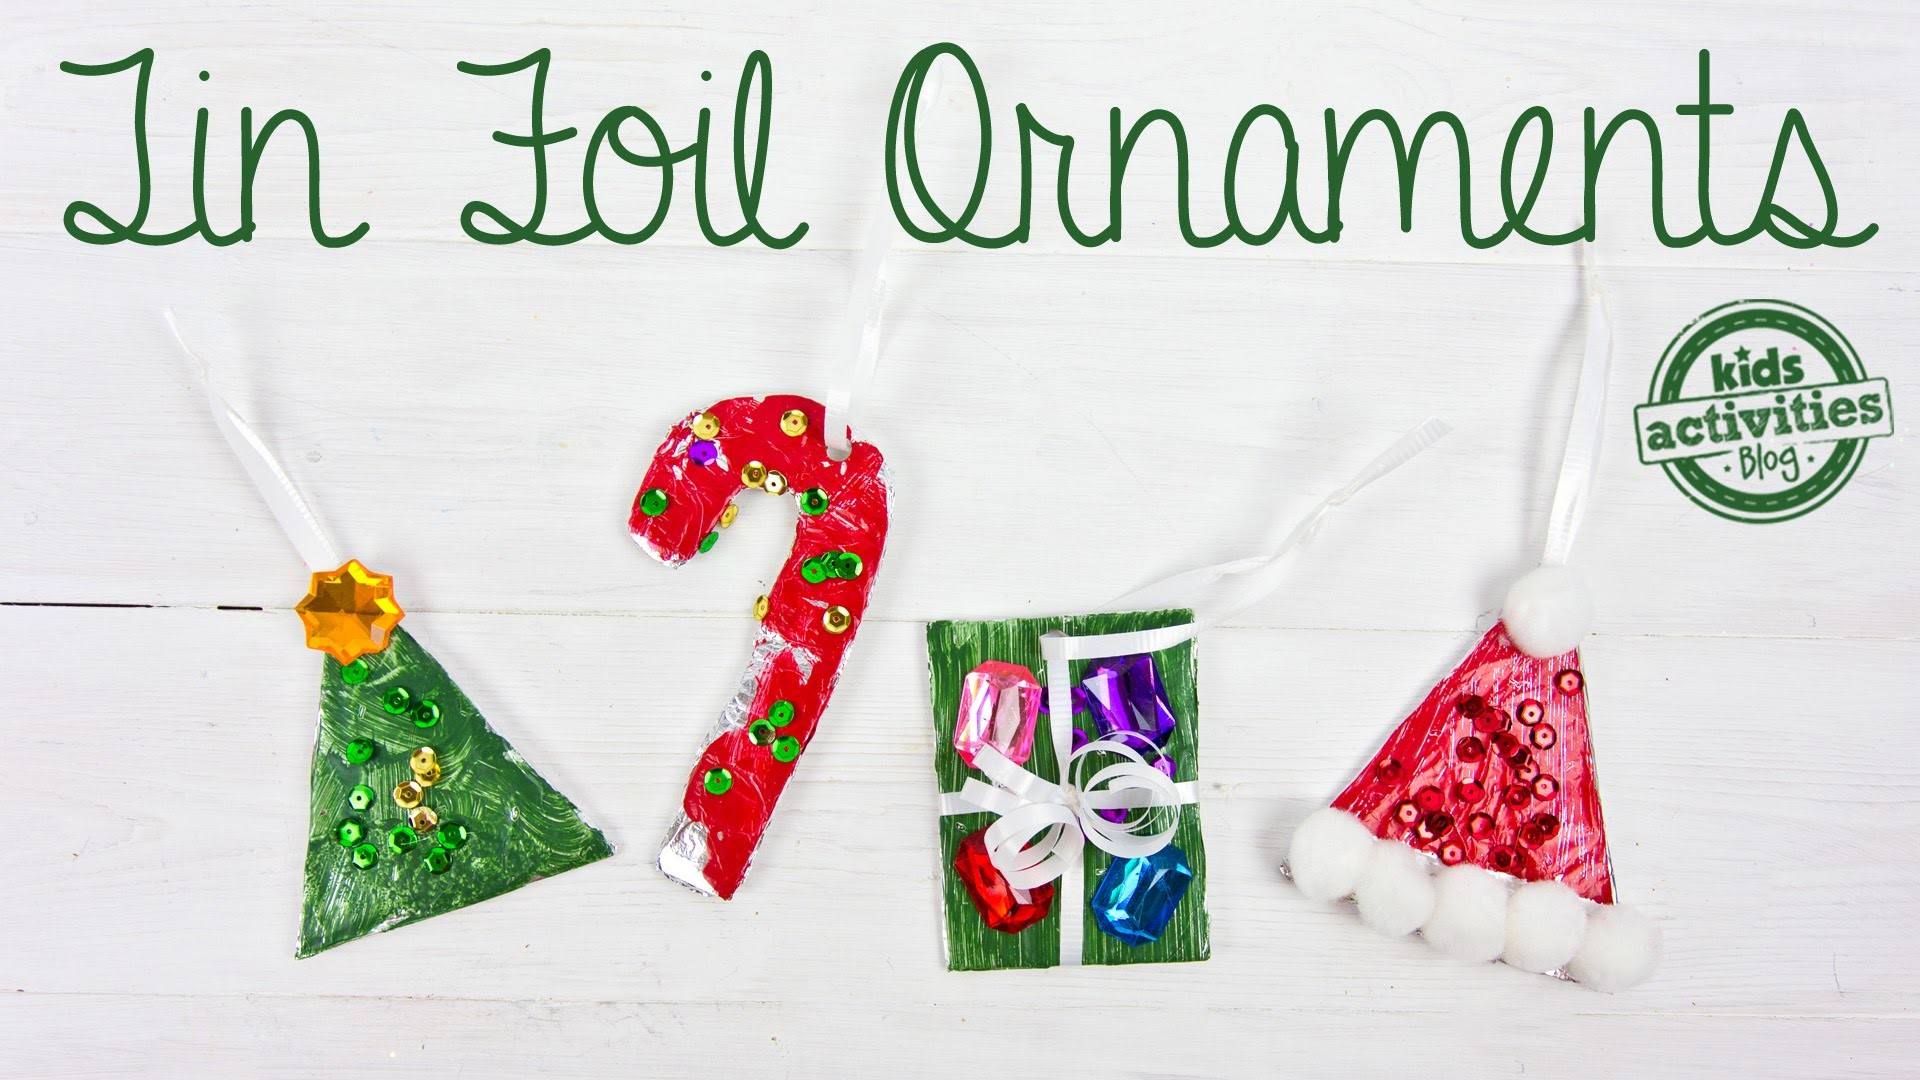 Tin Foil Christmas Ornaments for Kids